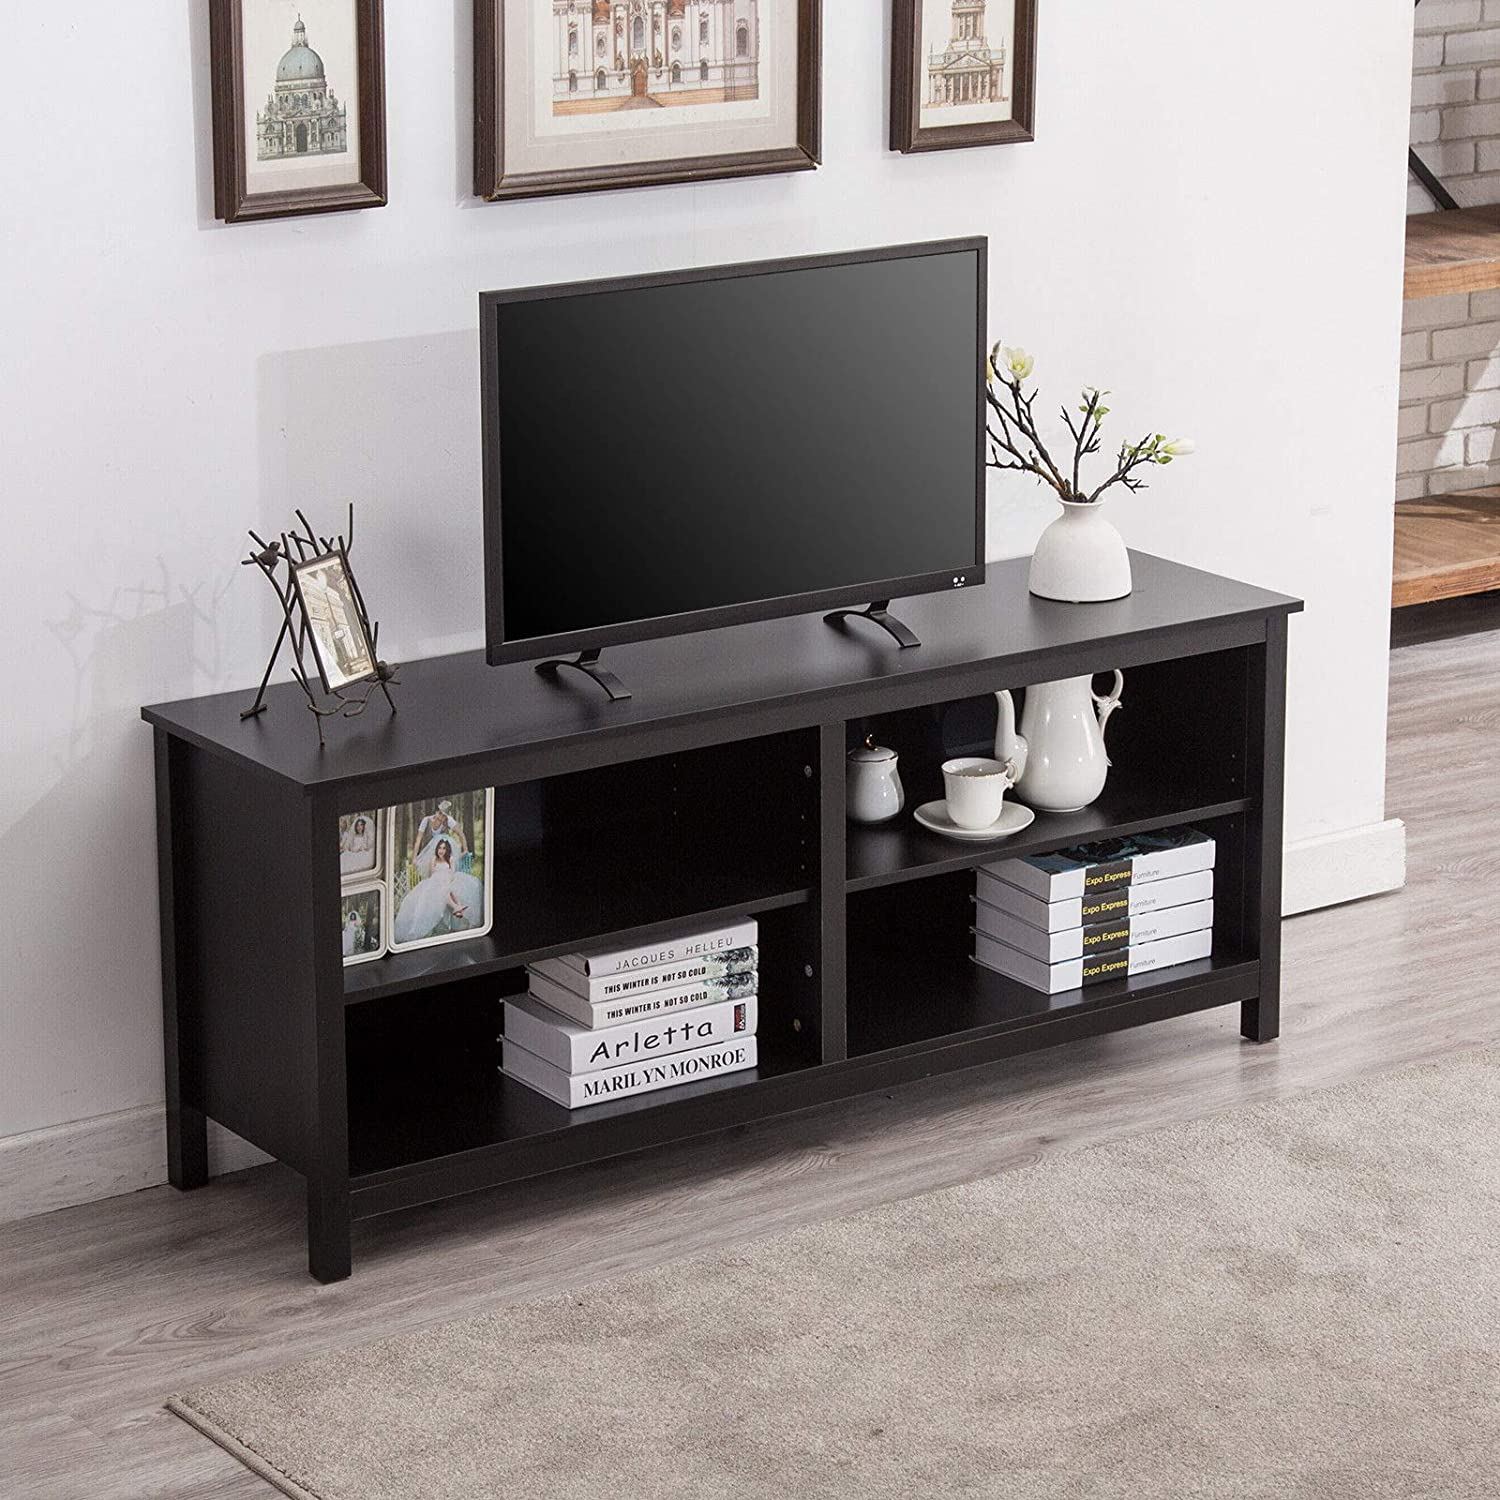 Expo Tv Stands : Tv stands digital signage